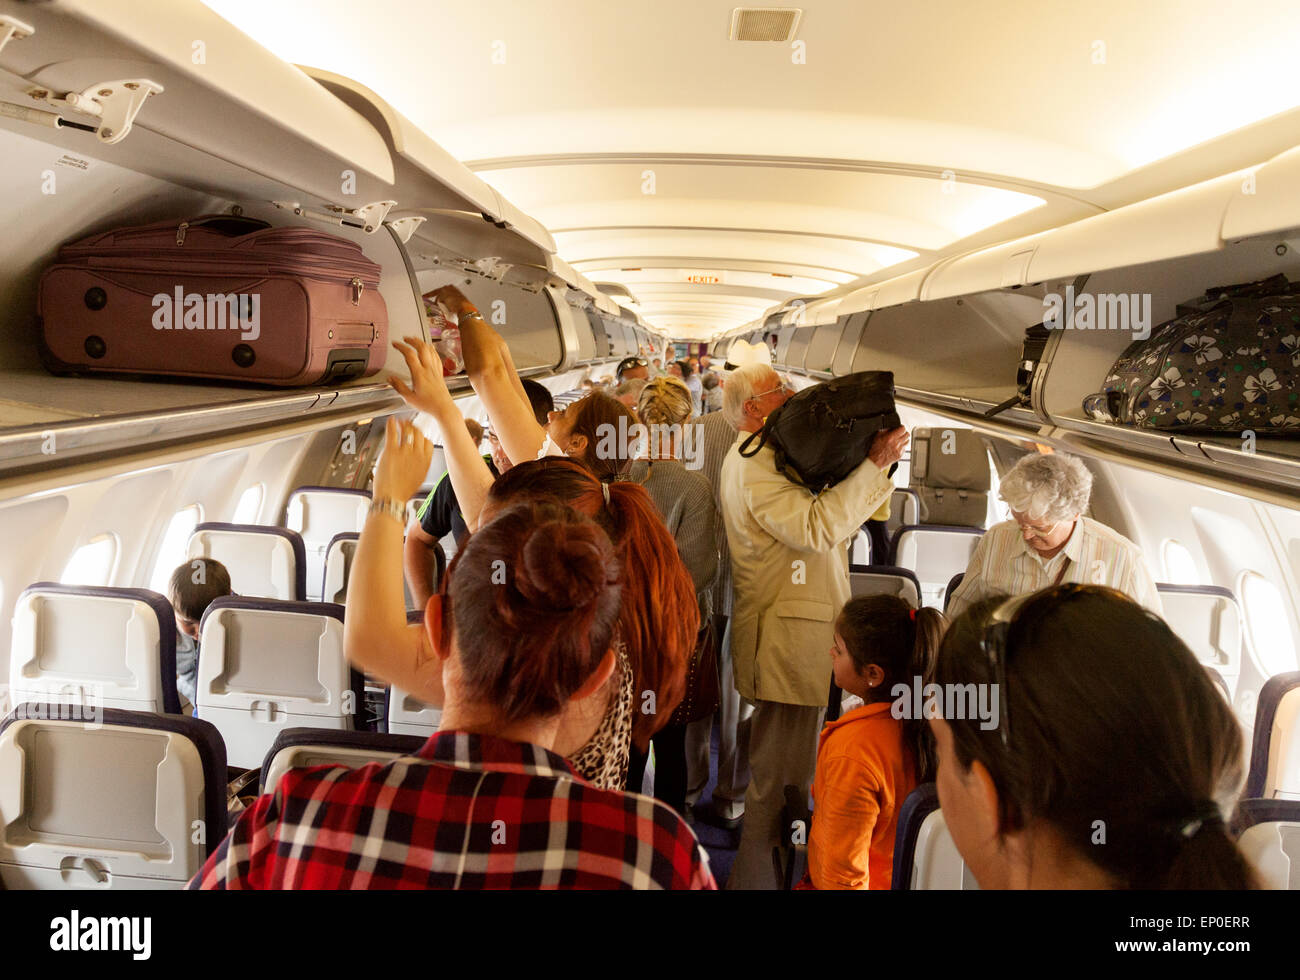 Airplane passengers ion a flight with Monarch Airlines in the cabin storing hand luggage in the overhead lockers - Stock Image